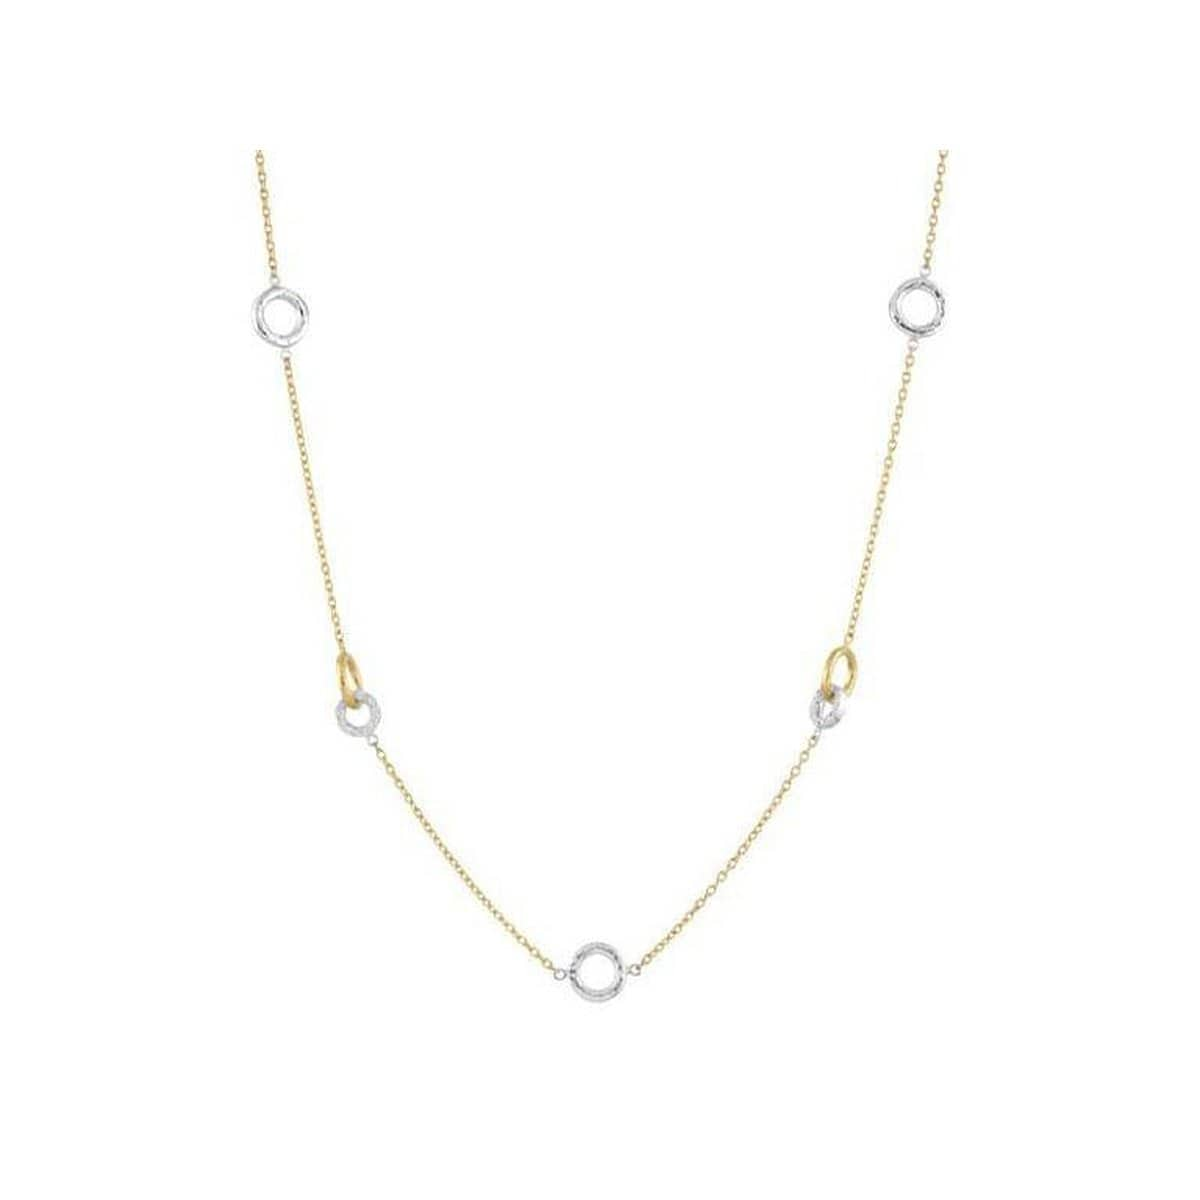 Hoopla 24K Gold Diamond Necklace - N-HPV-4H-3DISG-SST-Y-GURHAN-Renee Taylor Gallery